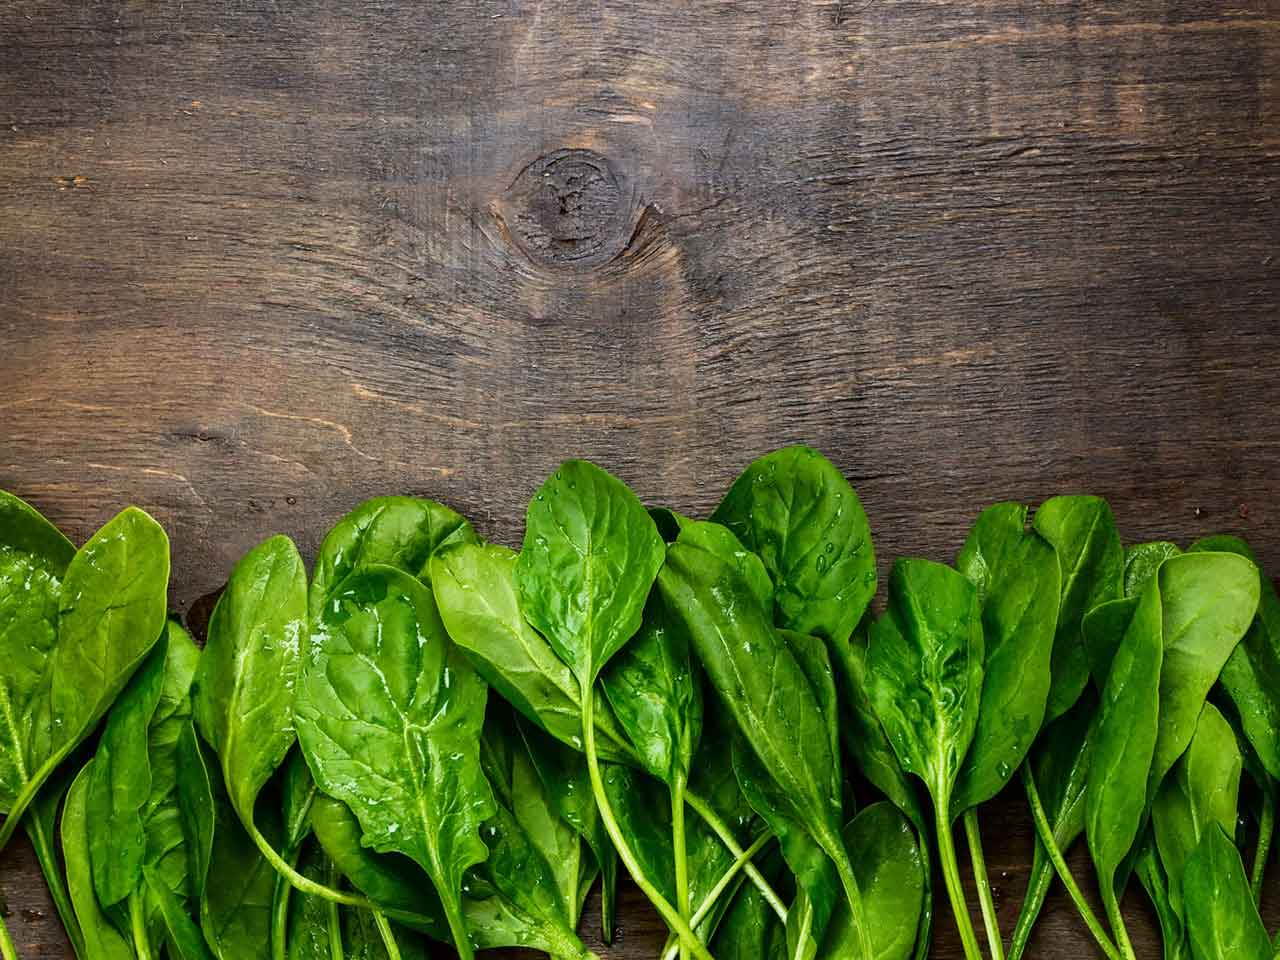 Folic acid rich spinach on a wooden board